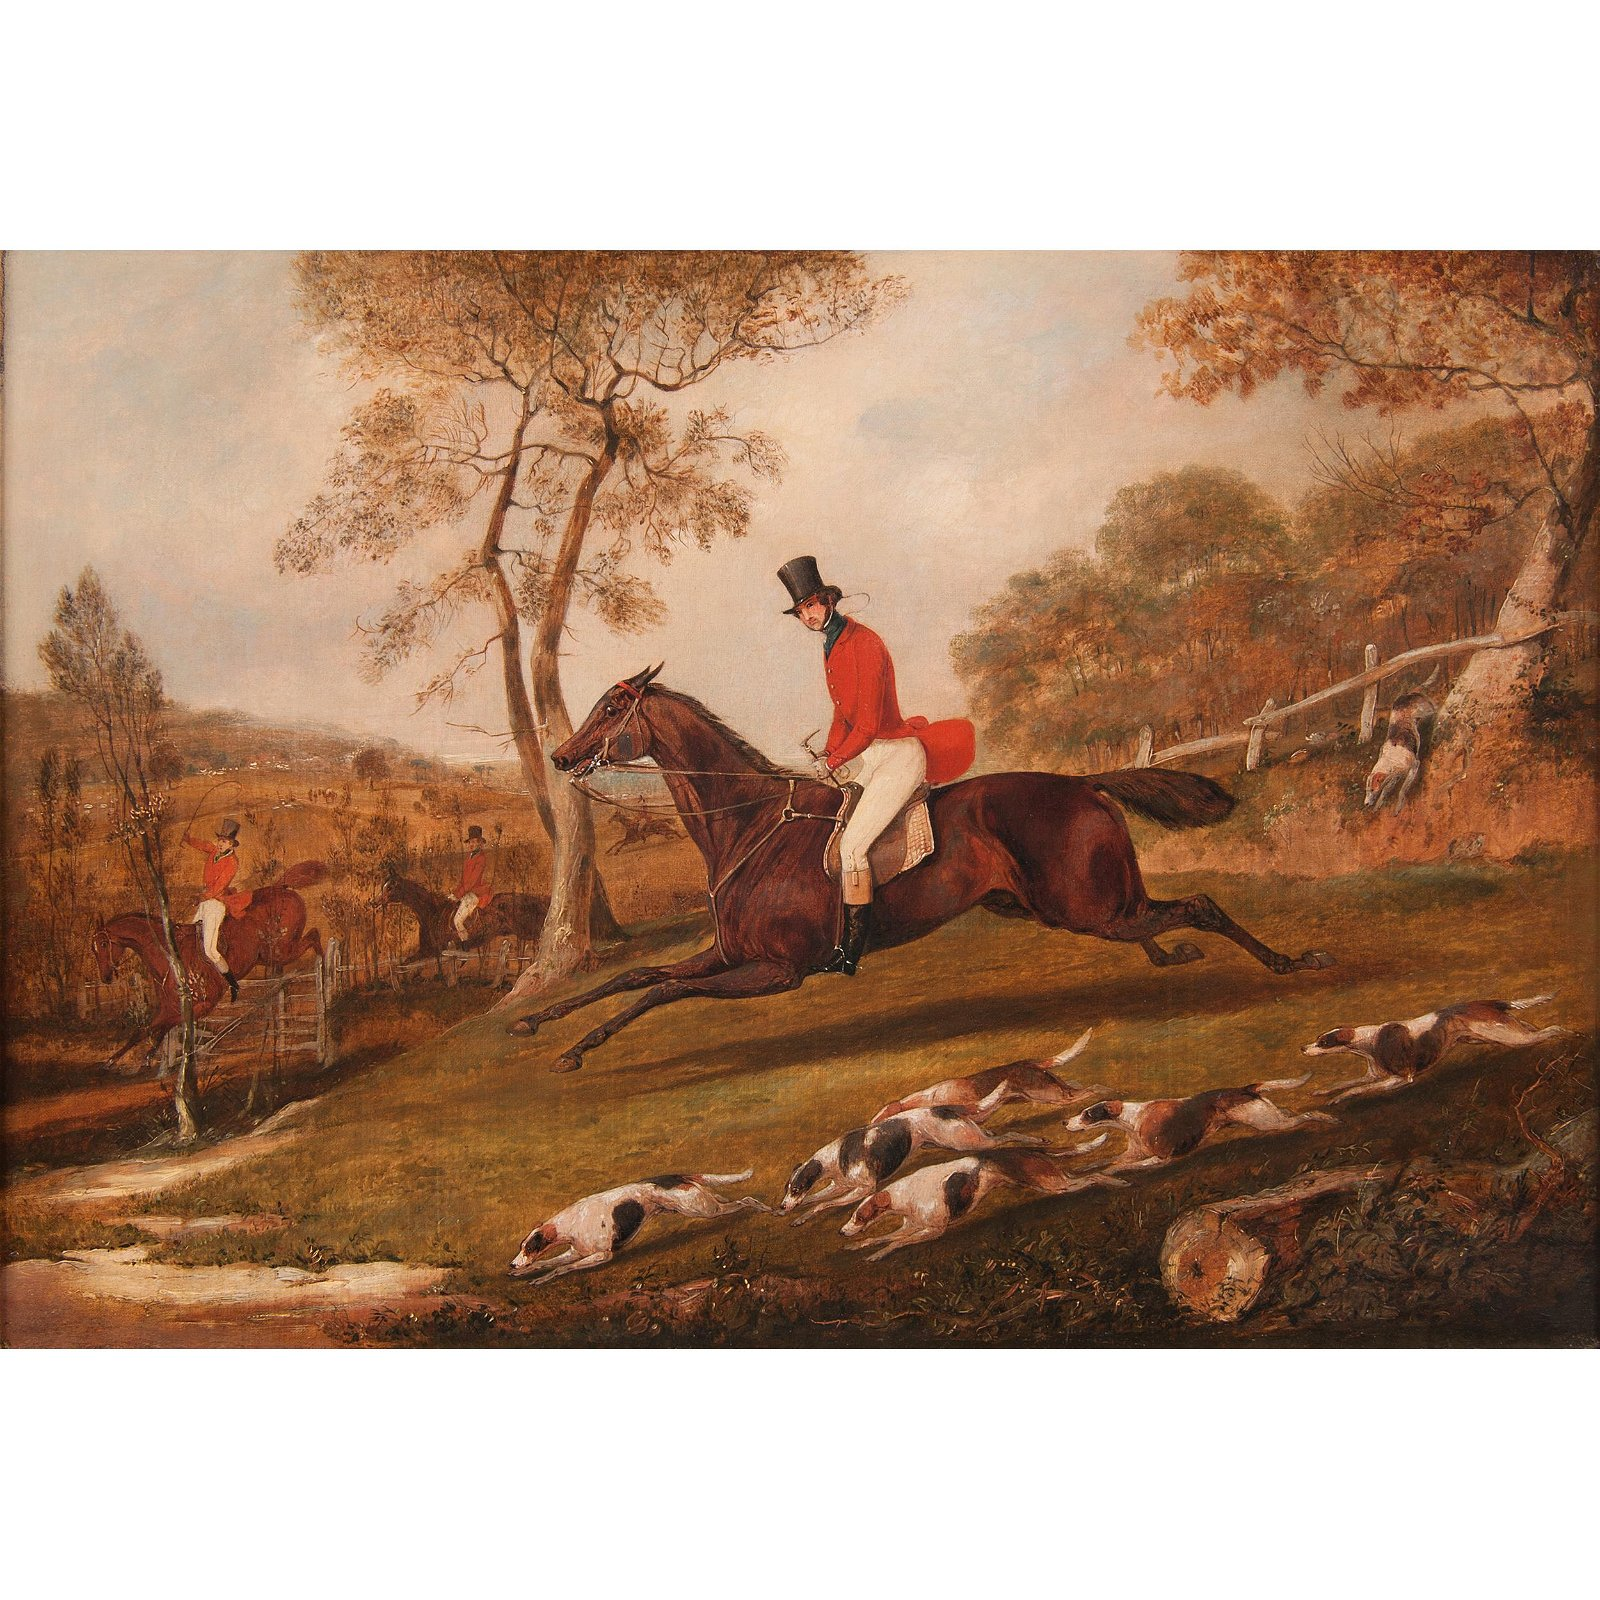 Attributed to Henry Thomas Alken (English, 1785-1851)